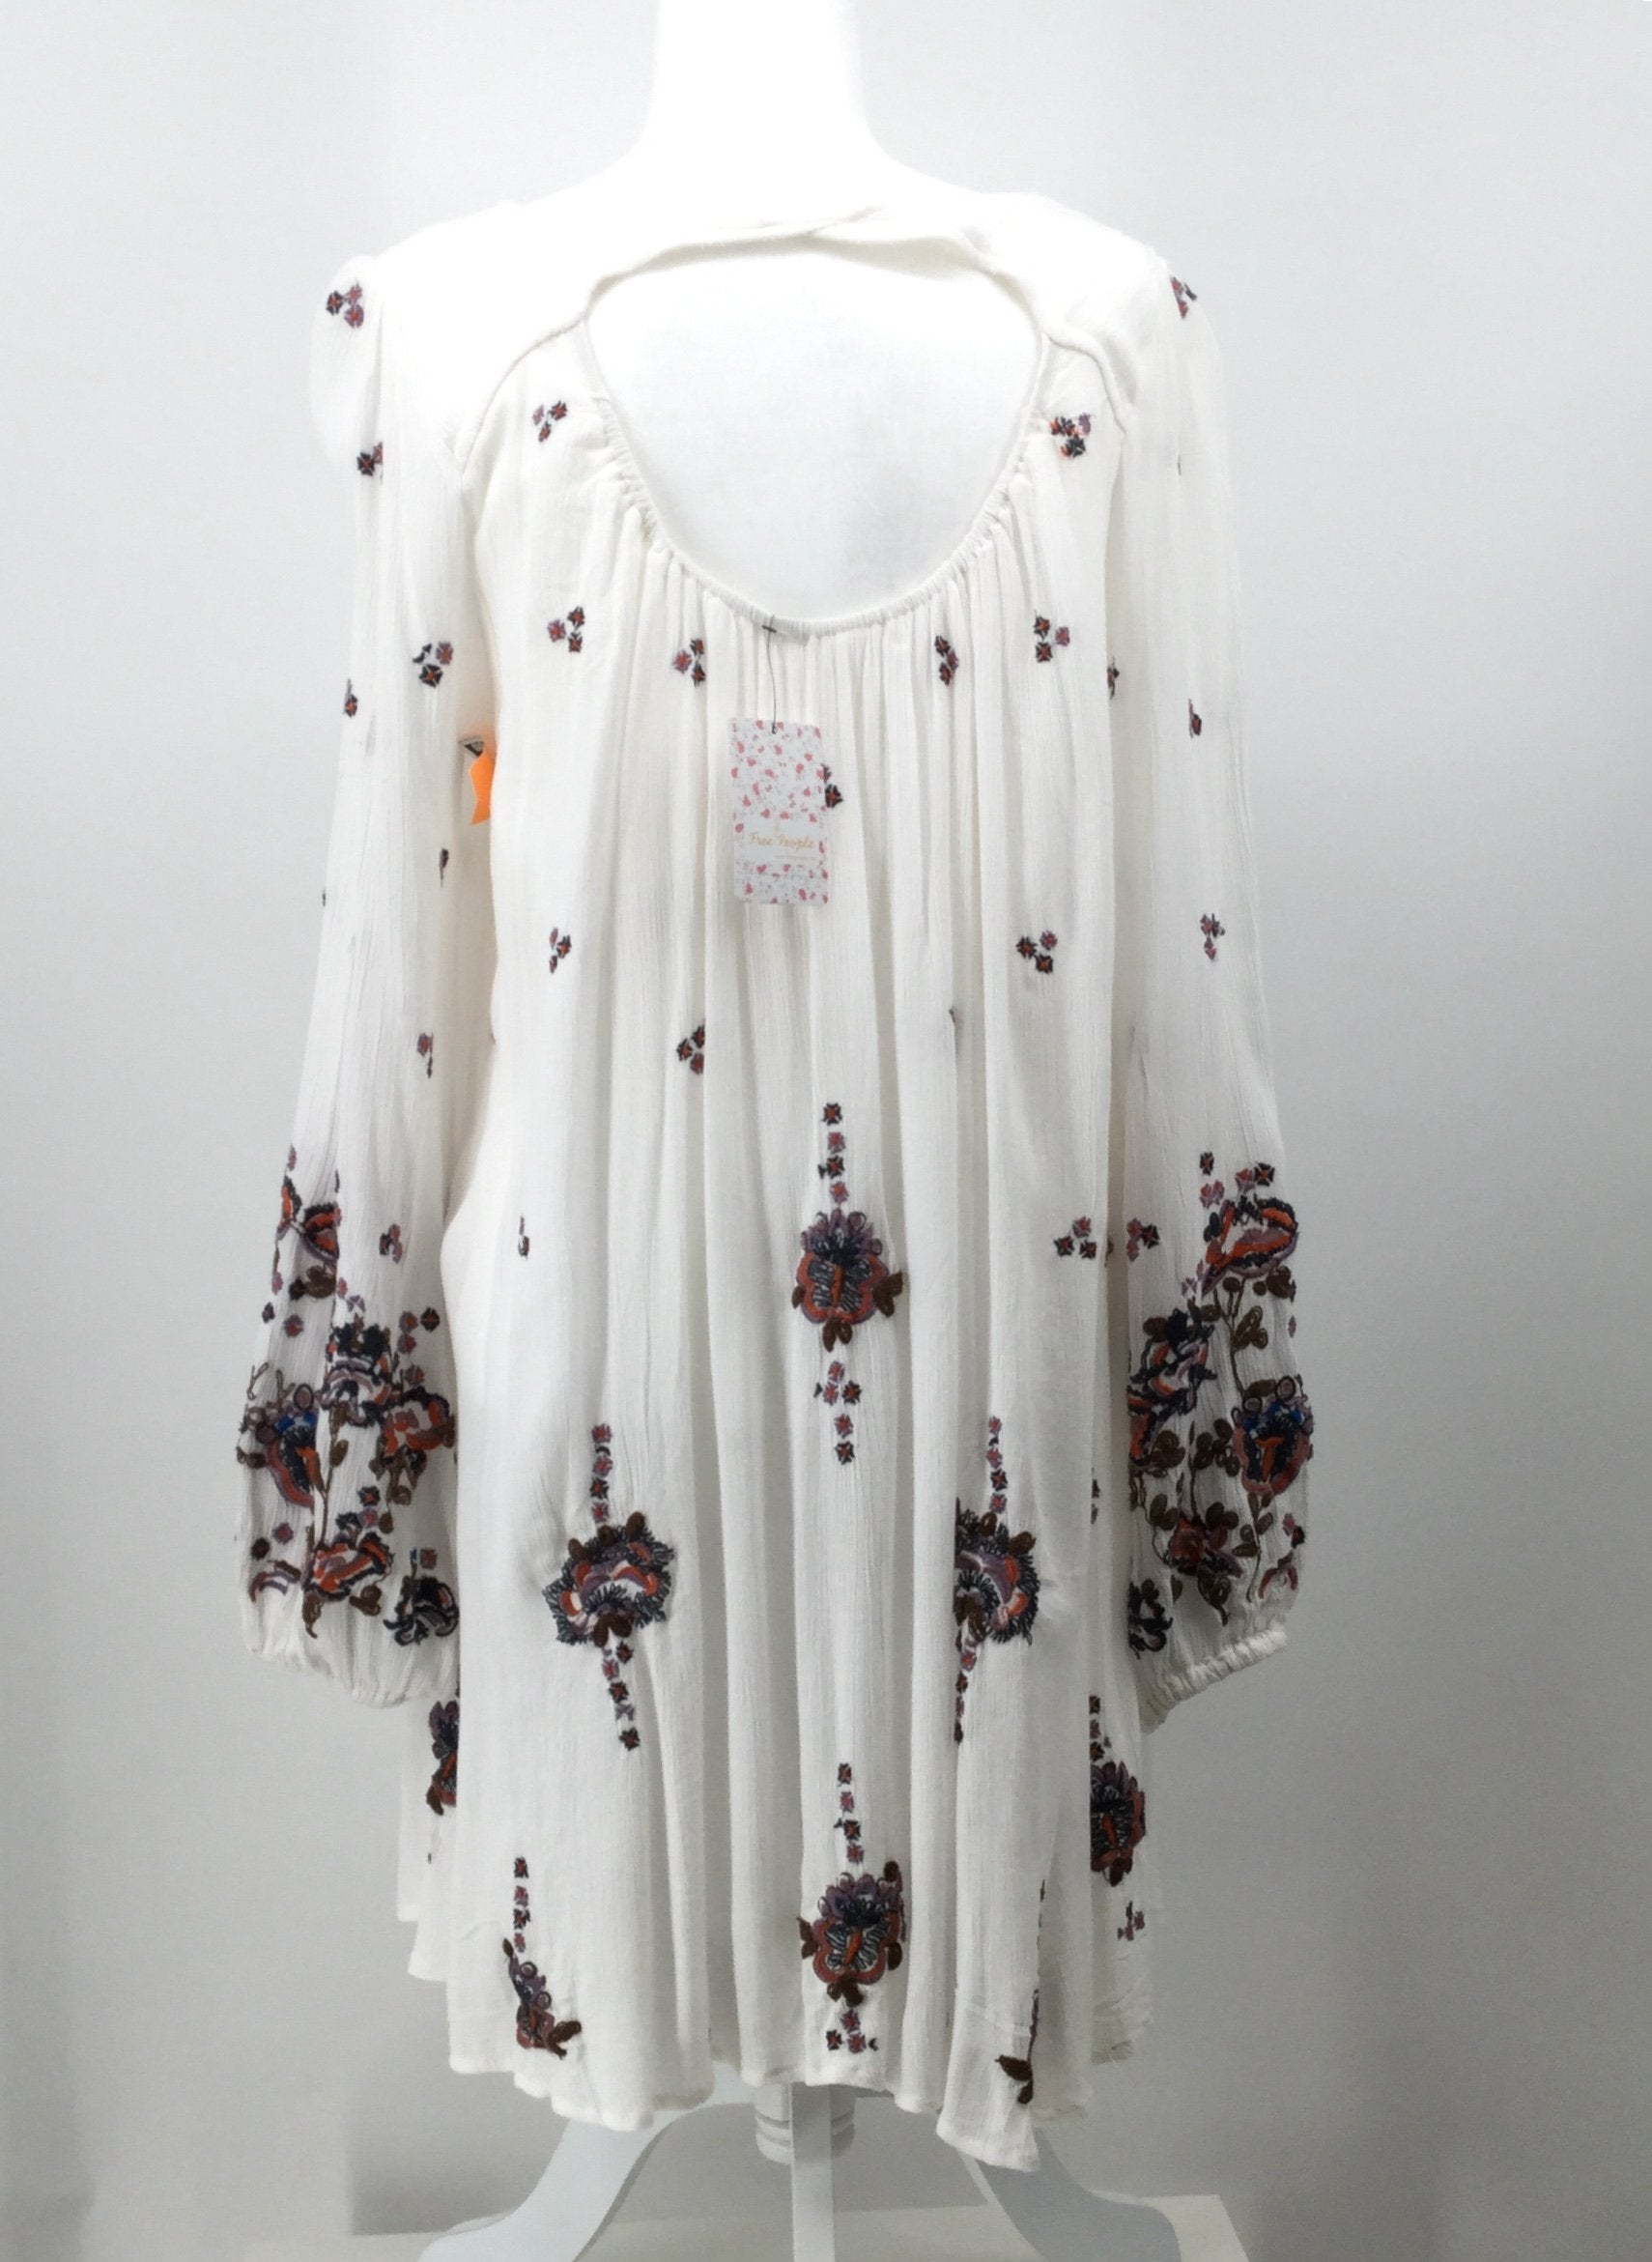 FREE PEOPLE DRESS SHORT LS SIZE:S - <P>FREE PEOPLE LONG SLEEVE DRESS WITH EMBROIDERY.,  SIZE S.,  NEW WITH TAGS.</P>